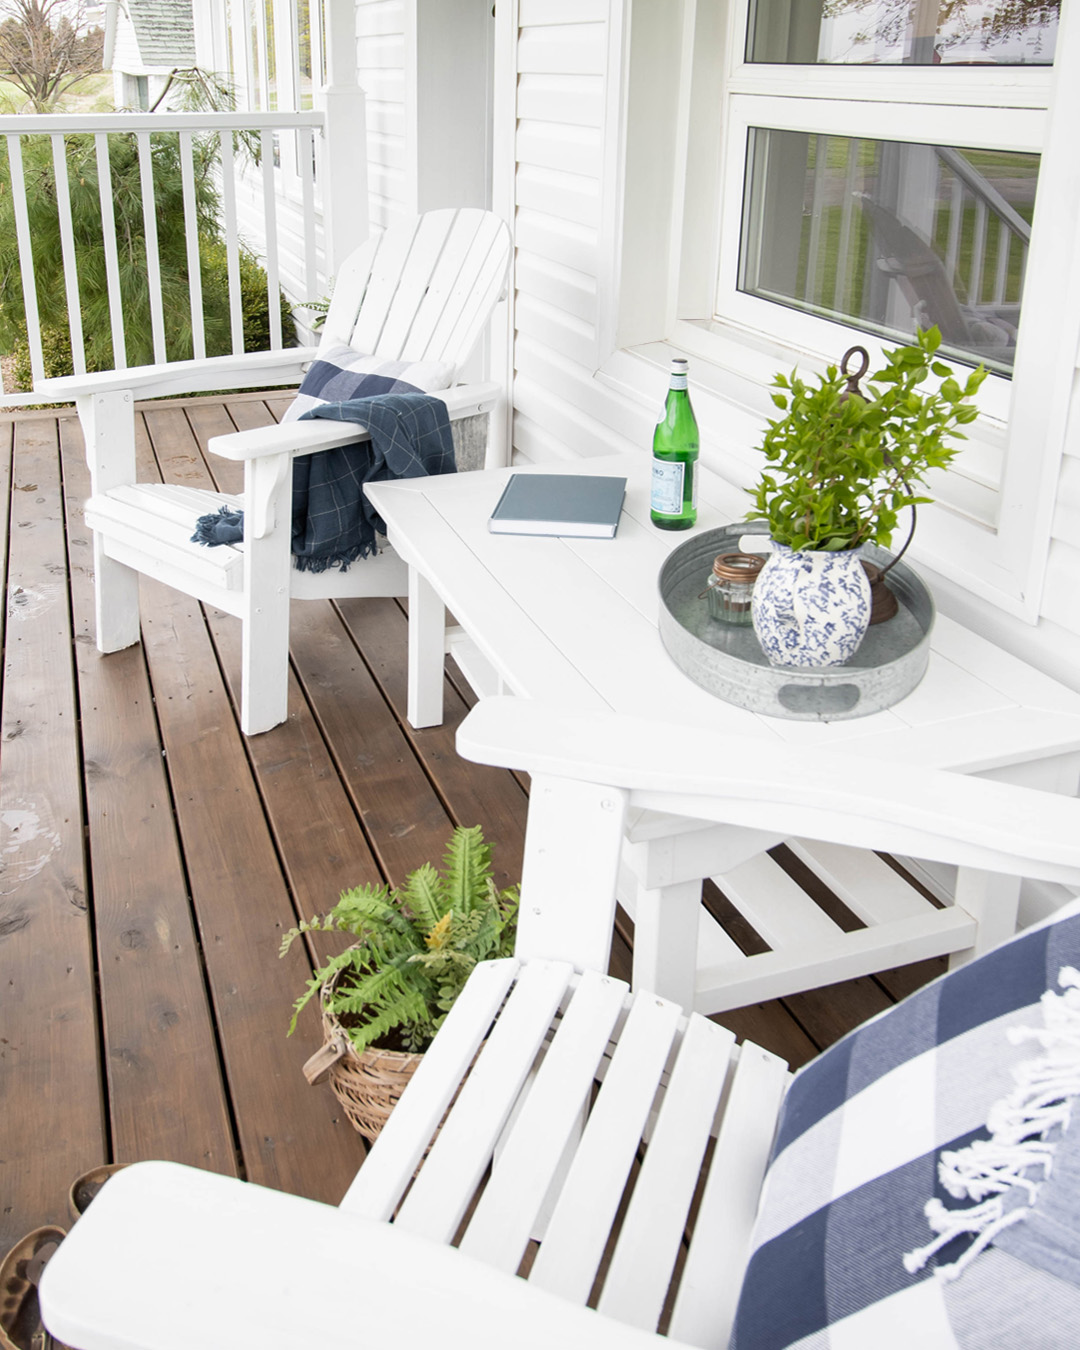 Five Things on a Friday - New All-Weather Adirondack Chairs